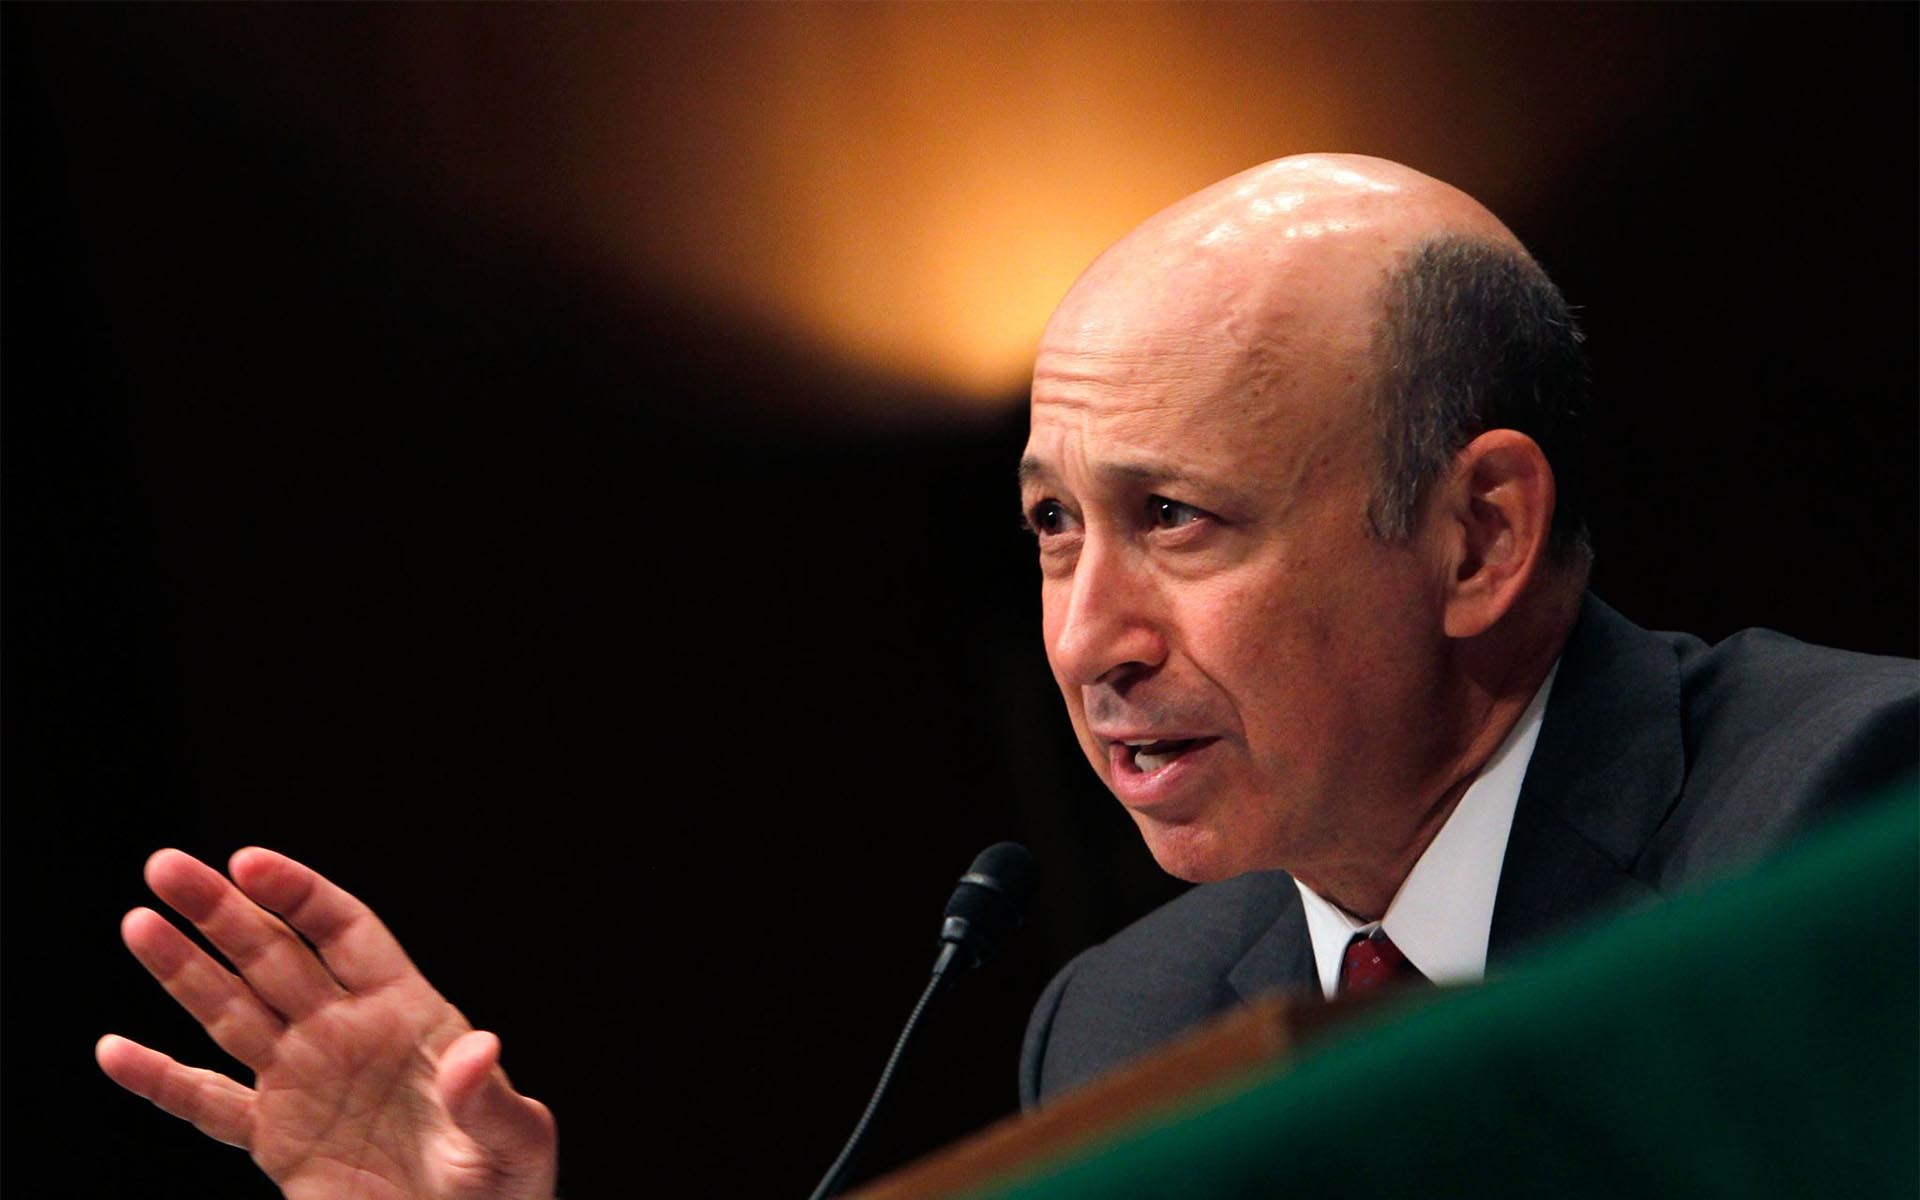 Goldman Sachs CEO Lloyd Blankfein Hints At Bitcoin Revolution